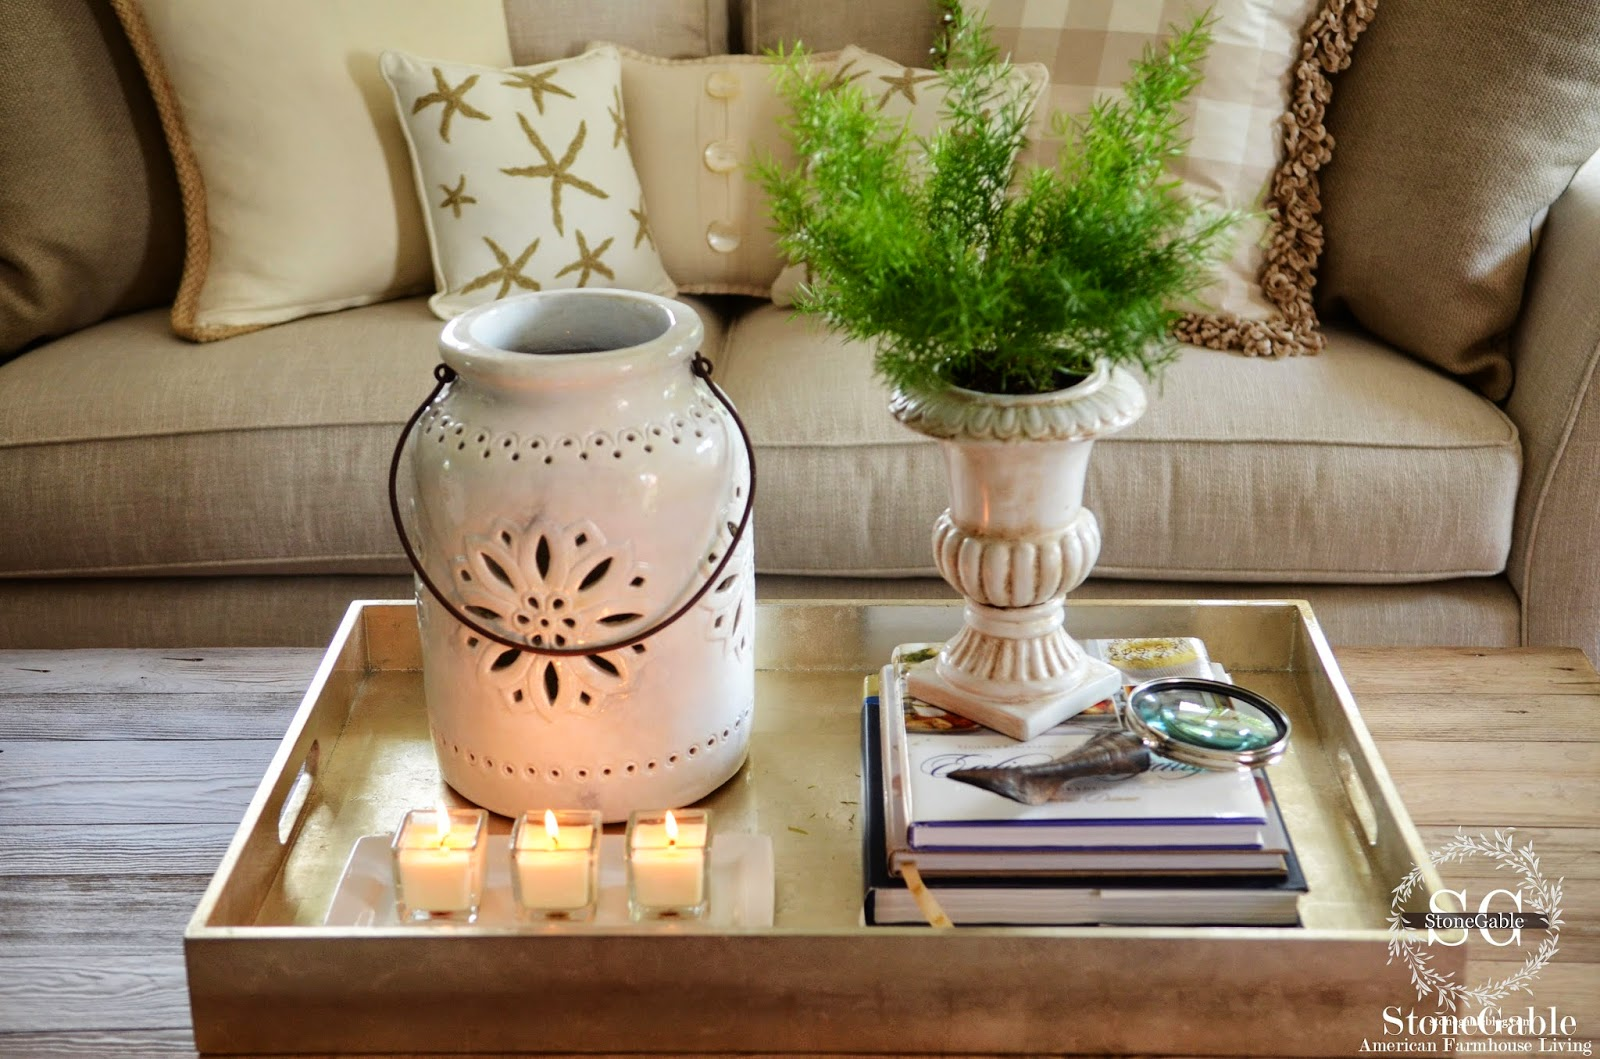 5 TIPS TO STYLE A COFFEE TABLE LIKE PRO StoneGable